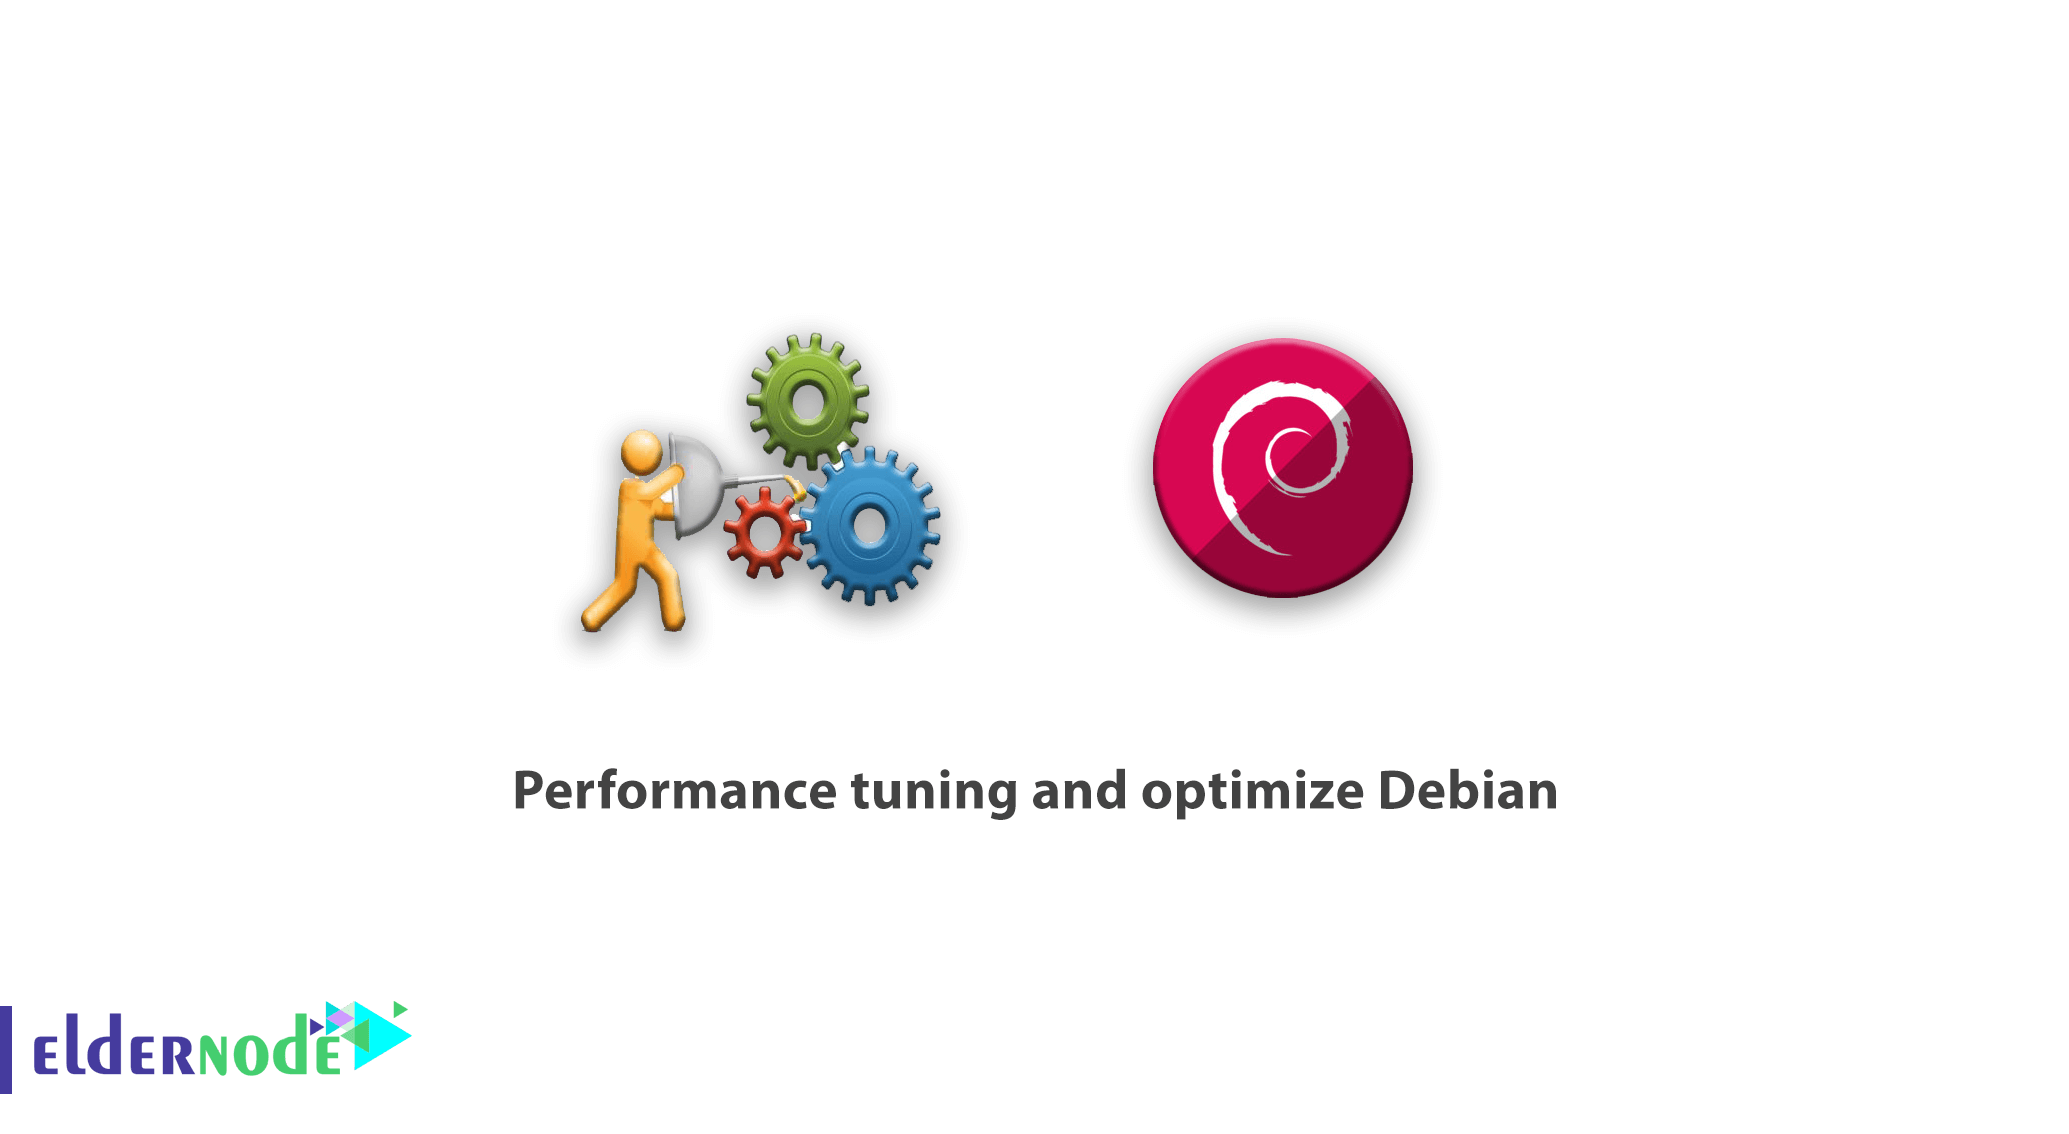 Performance tuning and optimize Debian